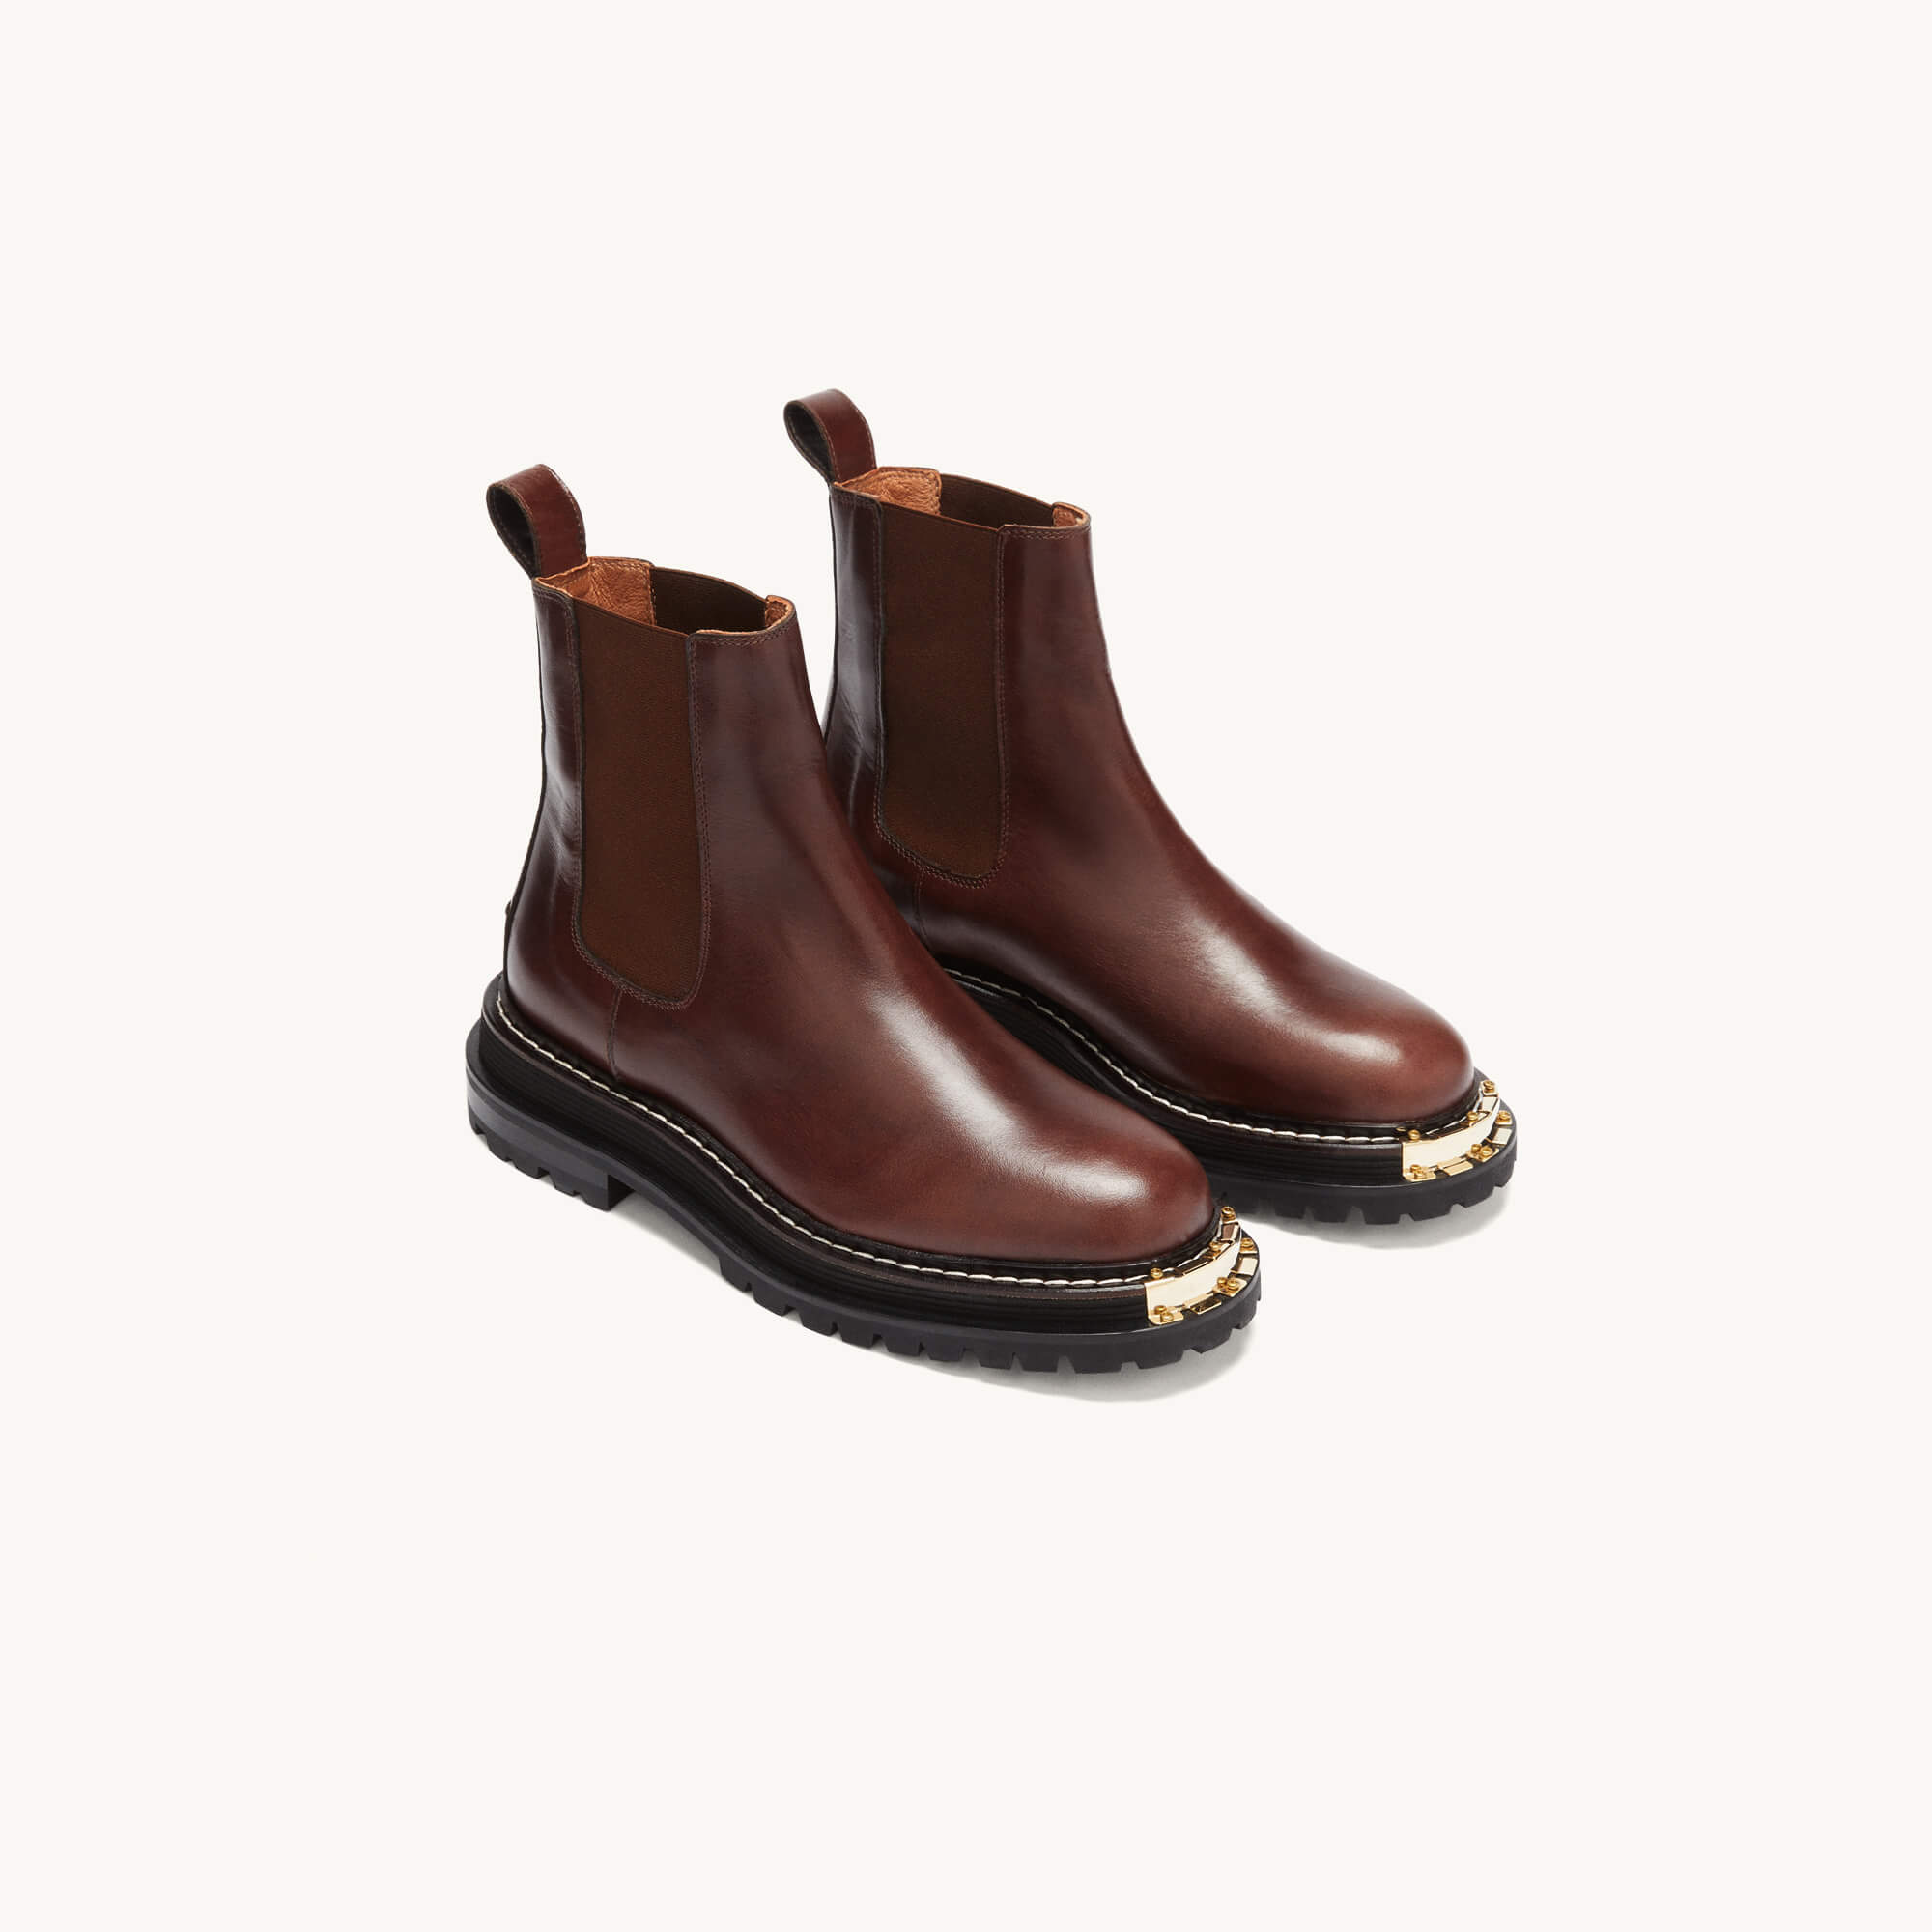 Leather boots with notched sole - Brown